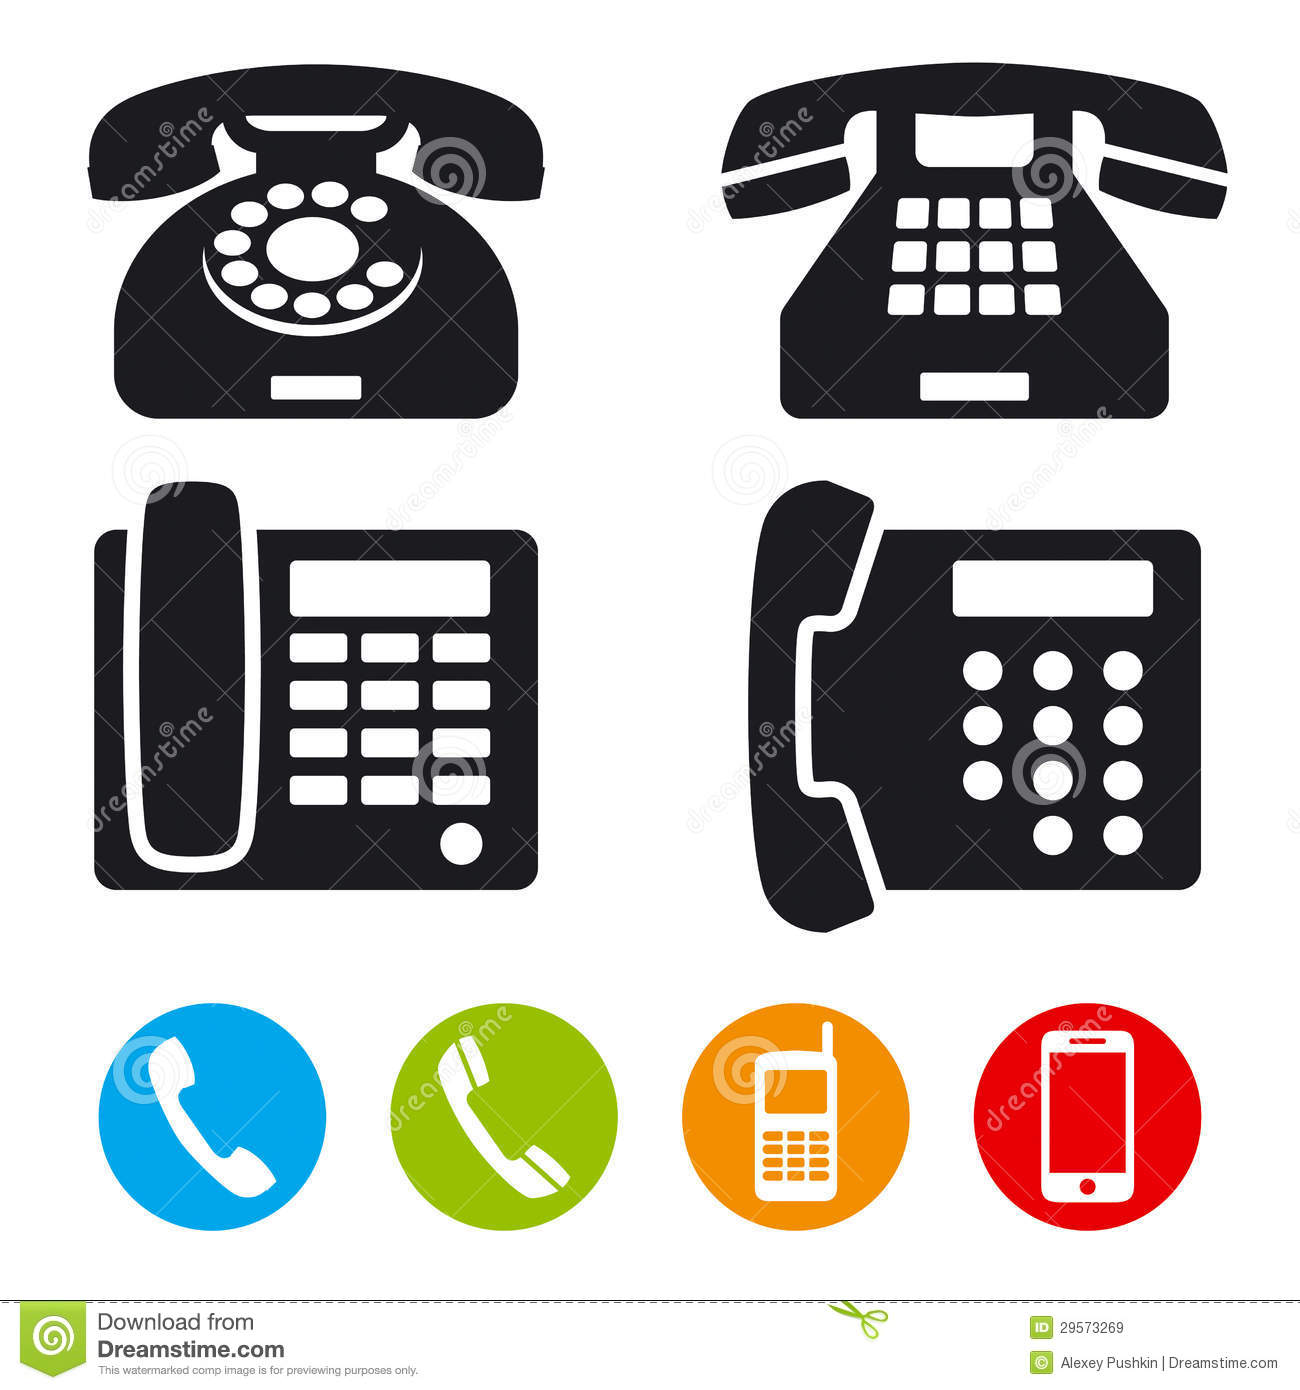 vector free download phone - photo #39